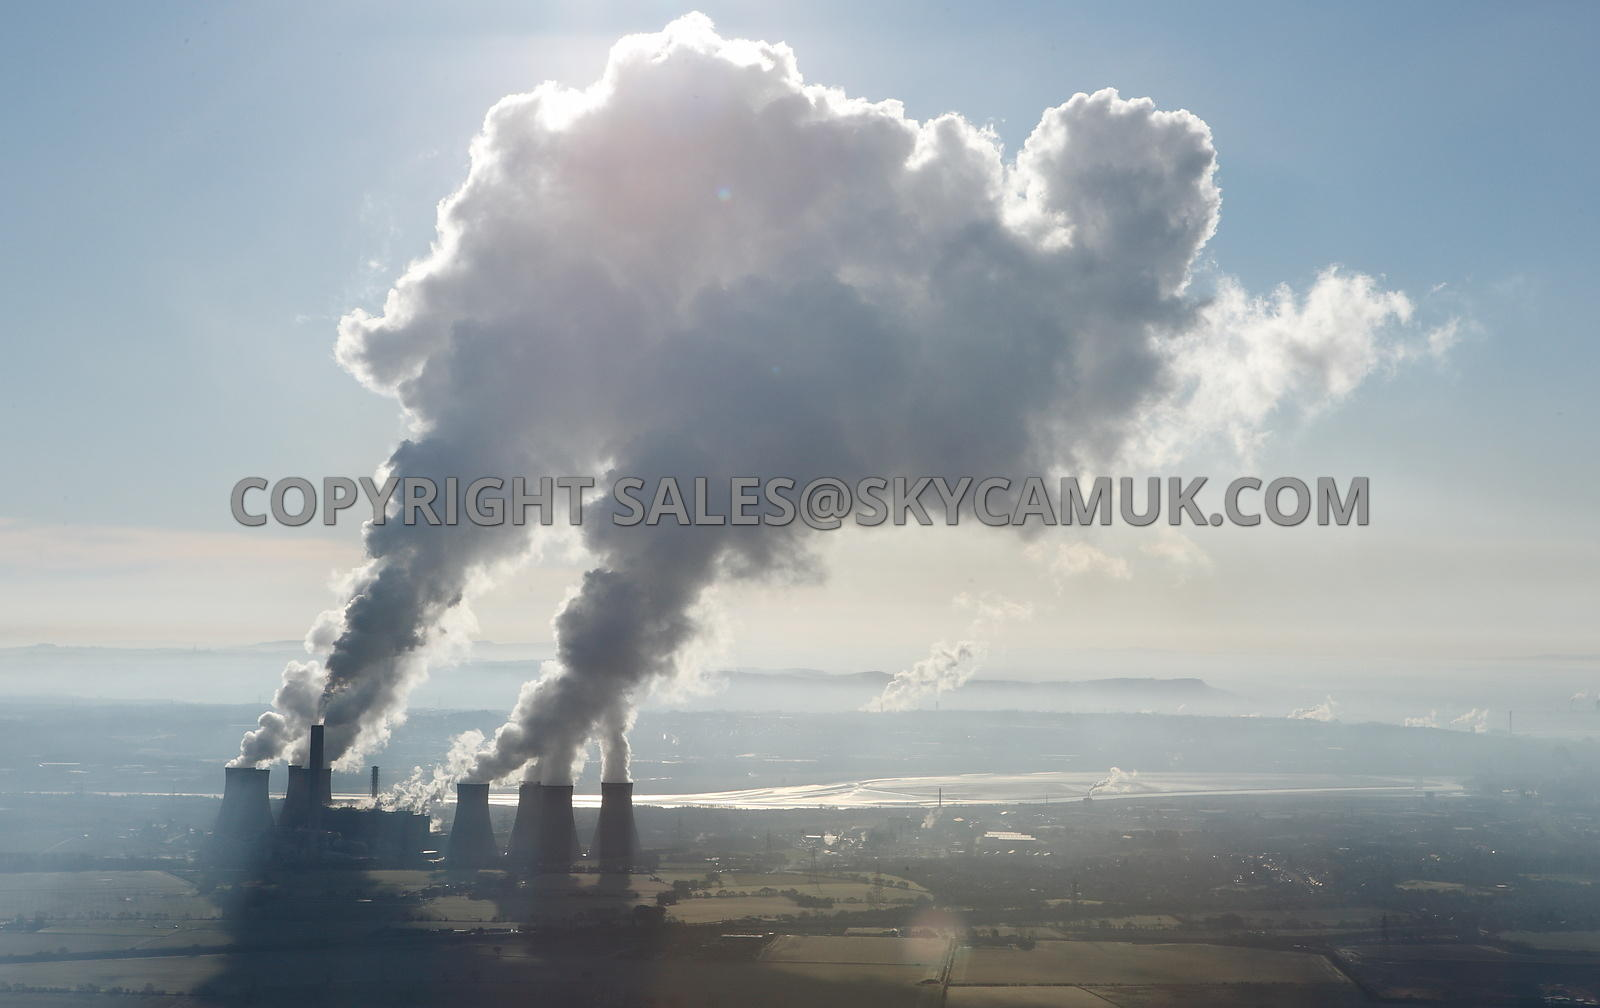 Fiddlers Ferry Power Station a dramatic aerial photograph of the clouds of steam being backlighted by the angle of the sun outlining the shape of the rising plumes of steam against a blue sky and the reflection on the river Mersey